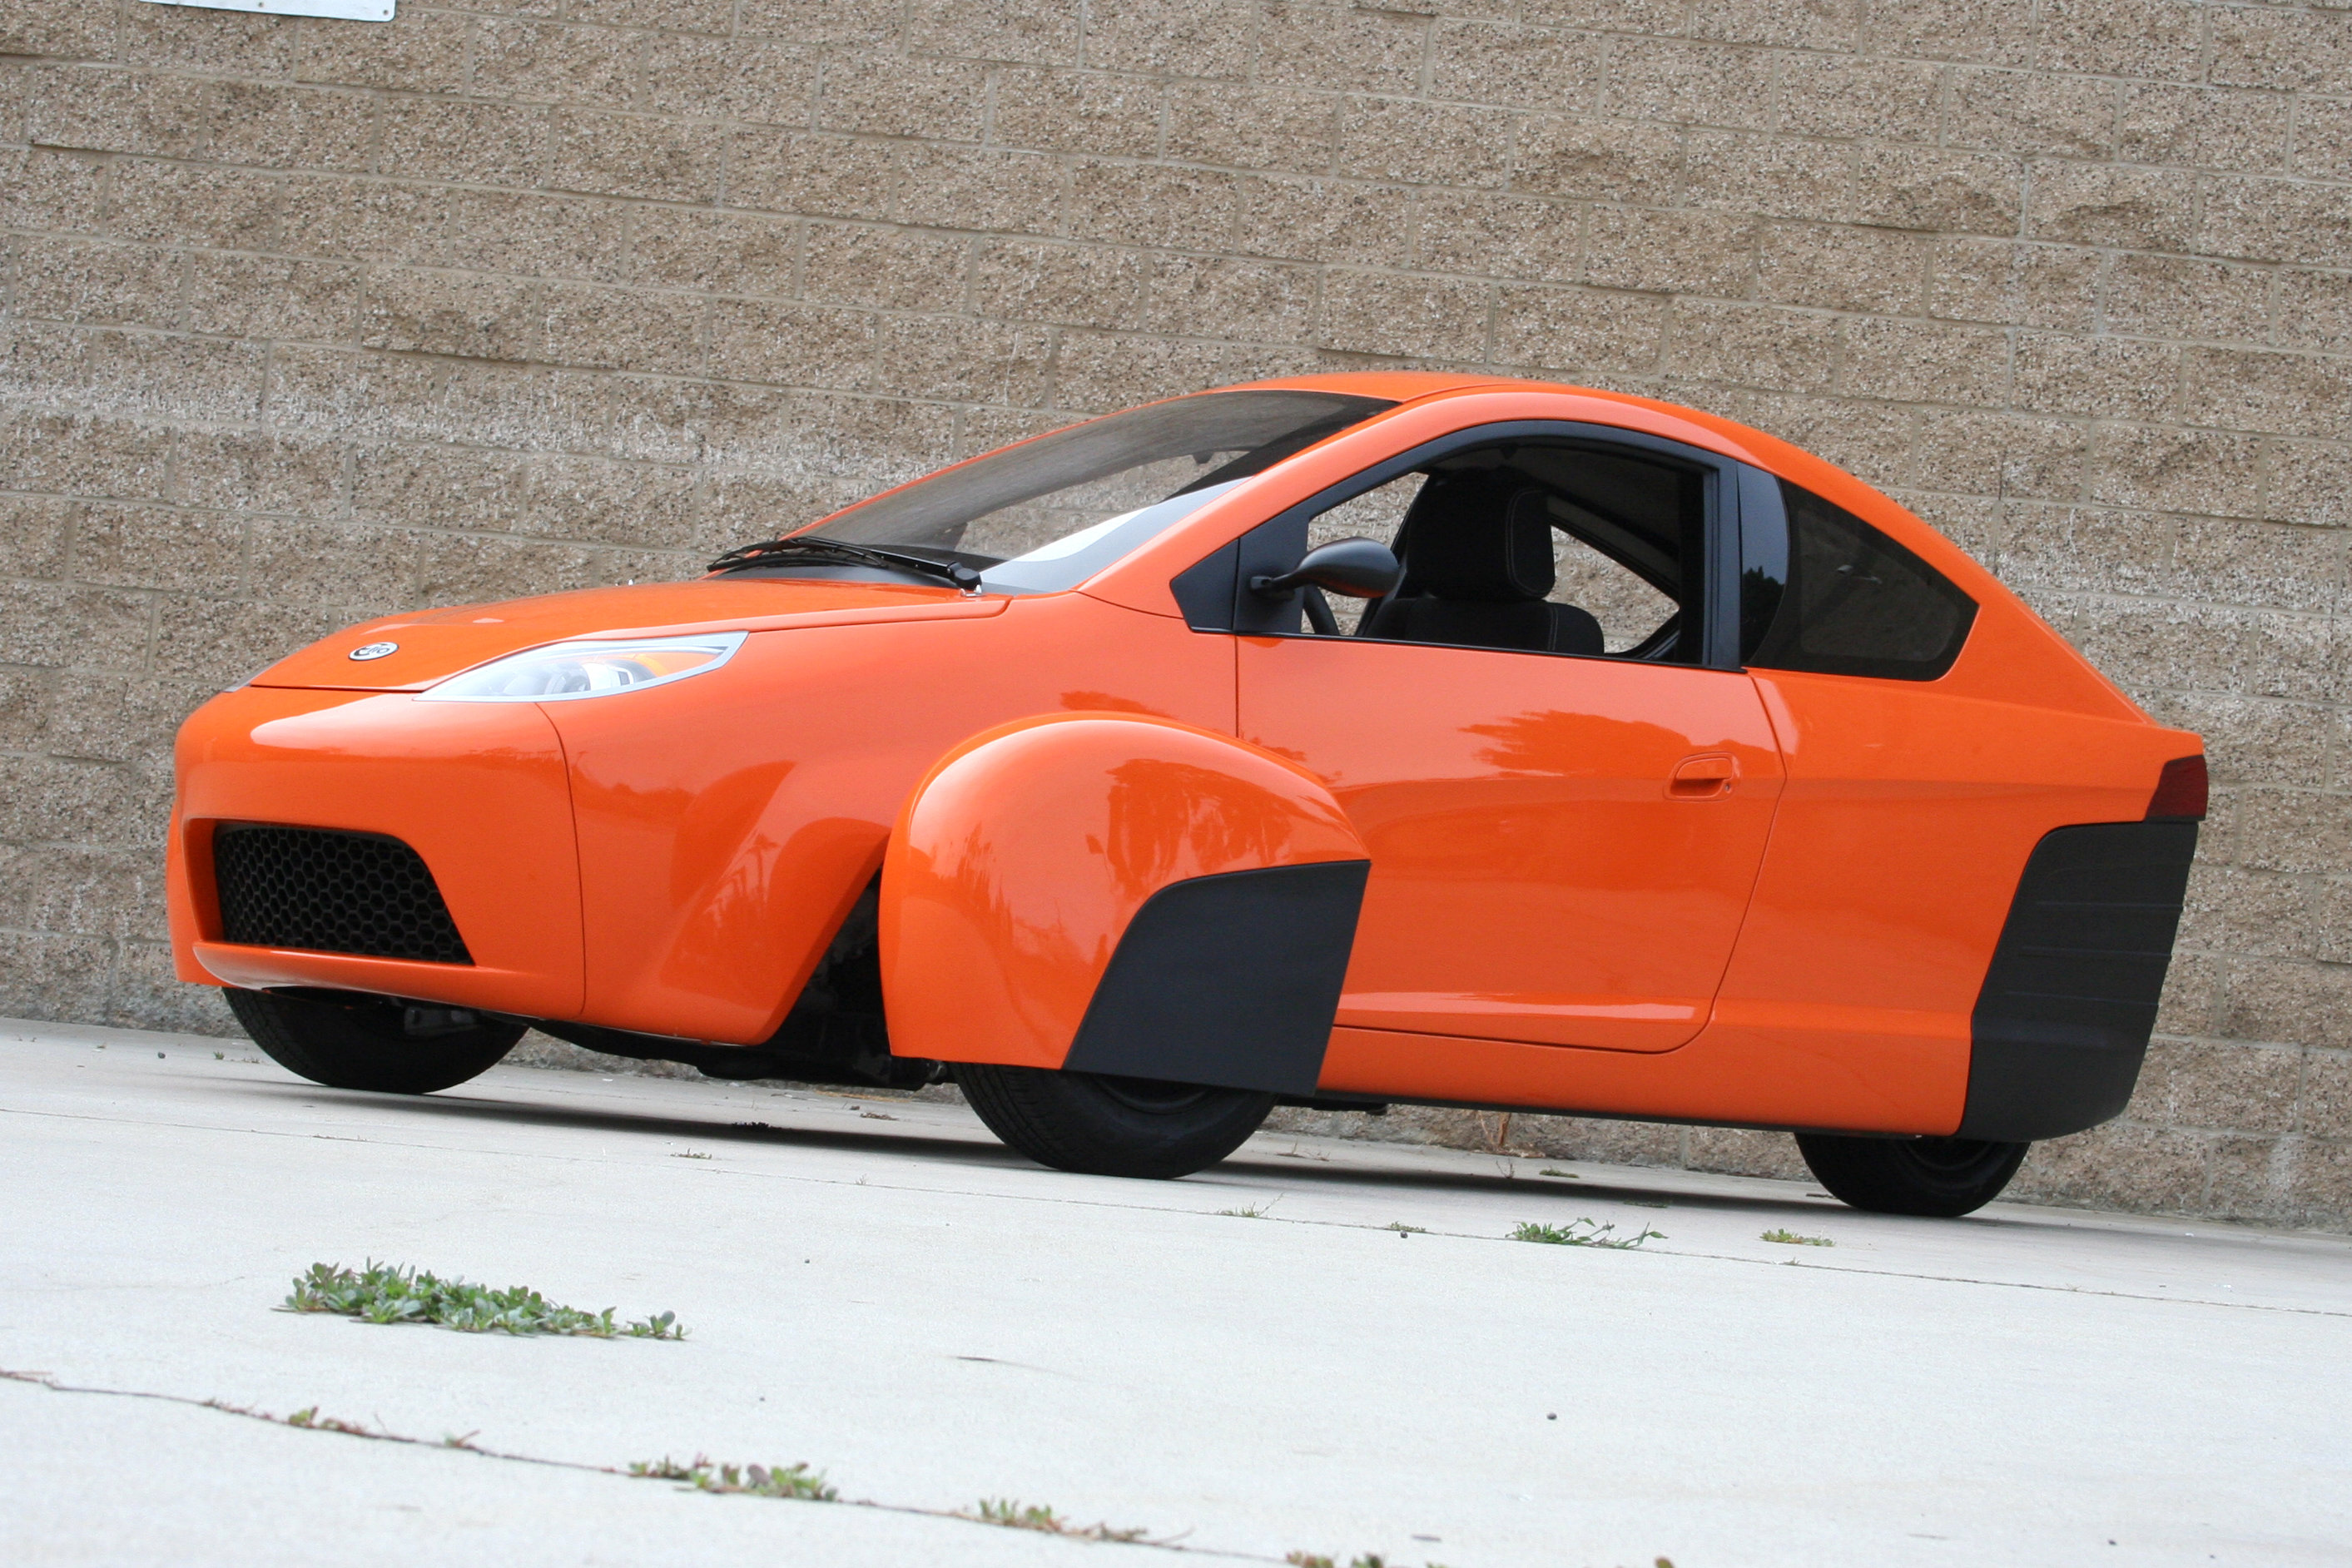 Elio P4 Review - AutoGuide.com